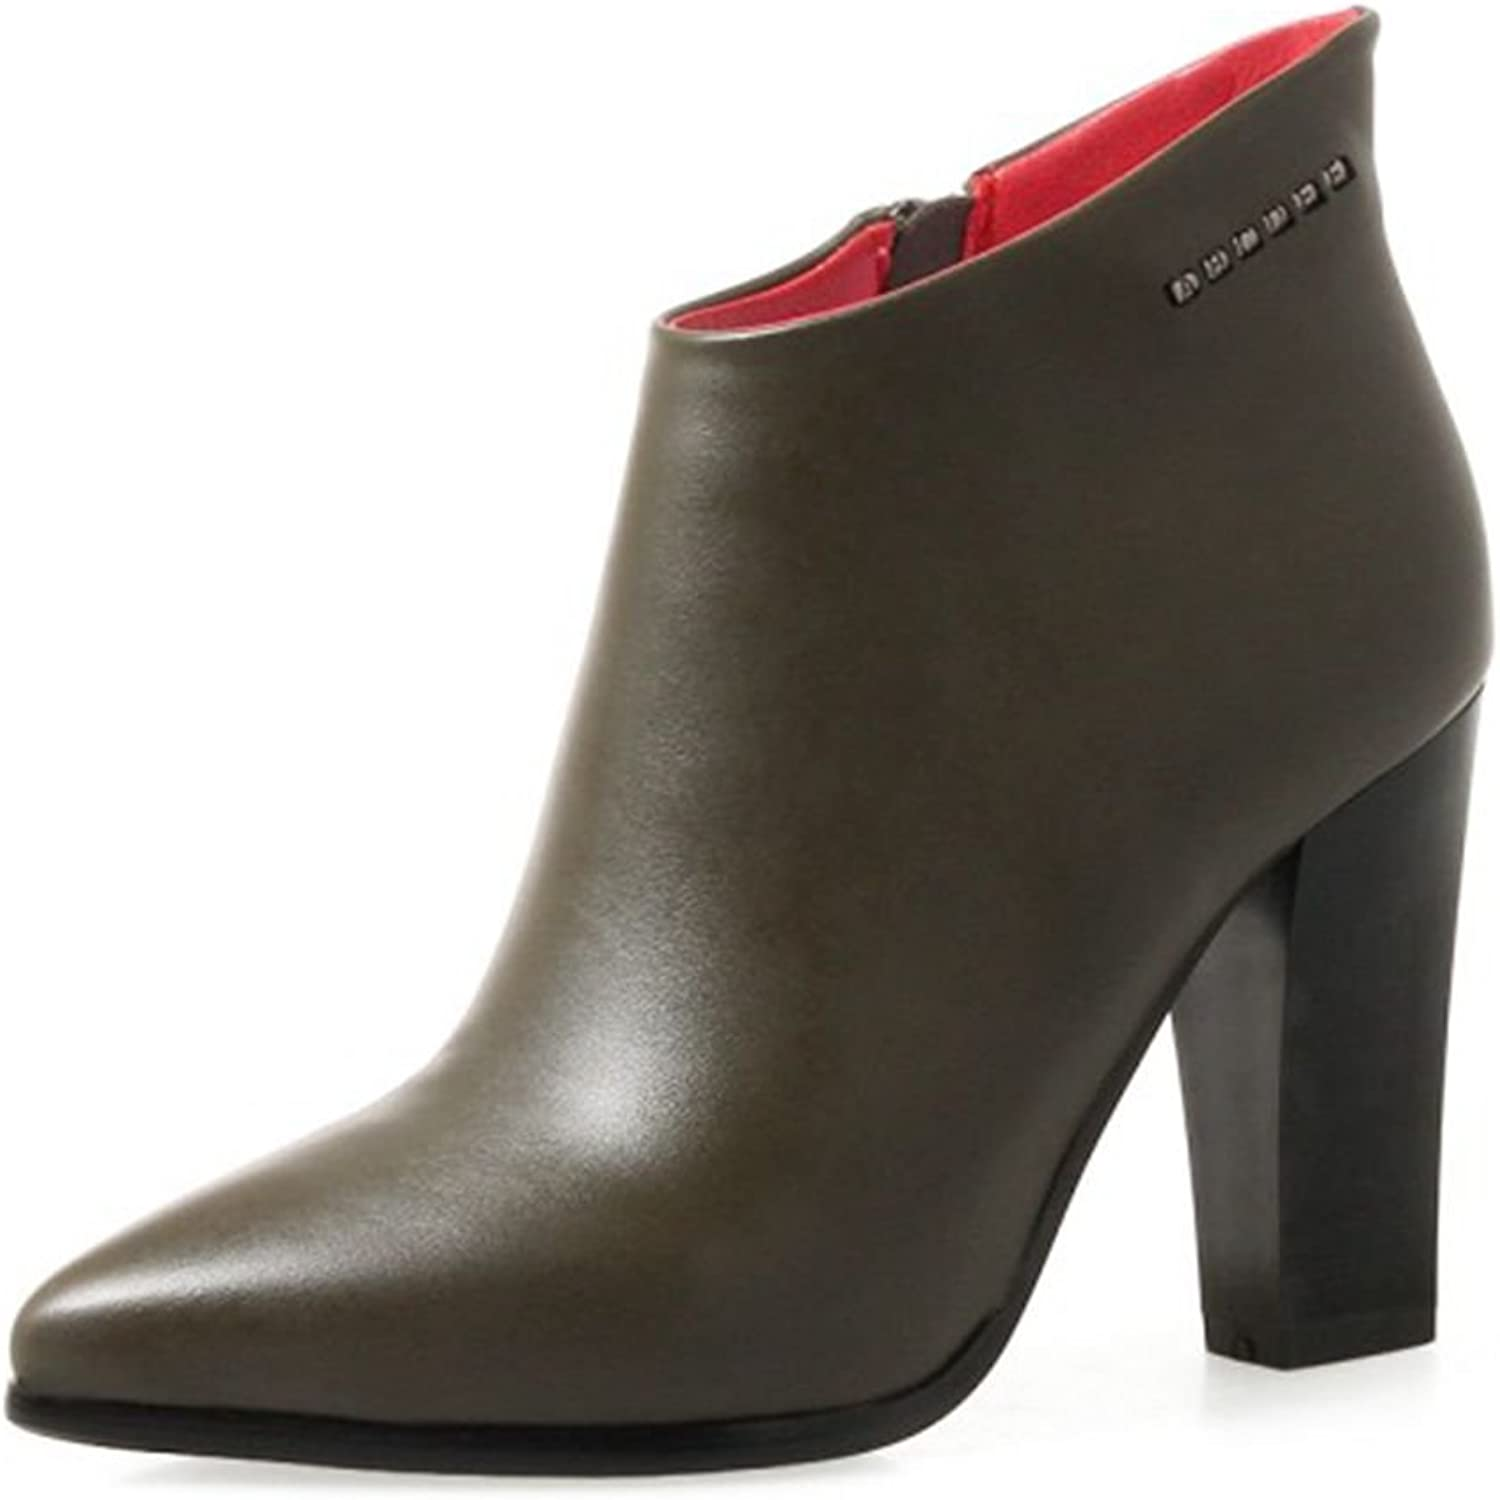 SaraIris Chunky Heels Pointed-Toe Ankle Boots for Women